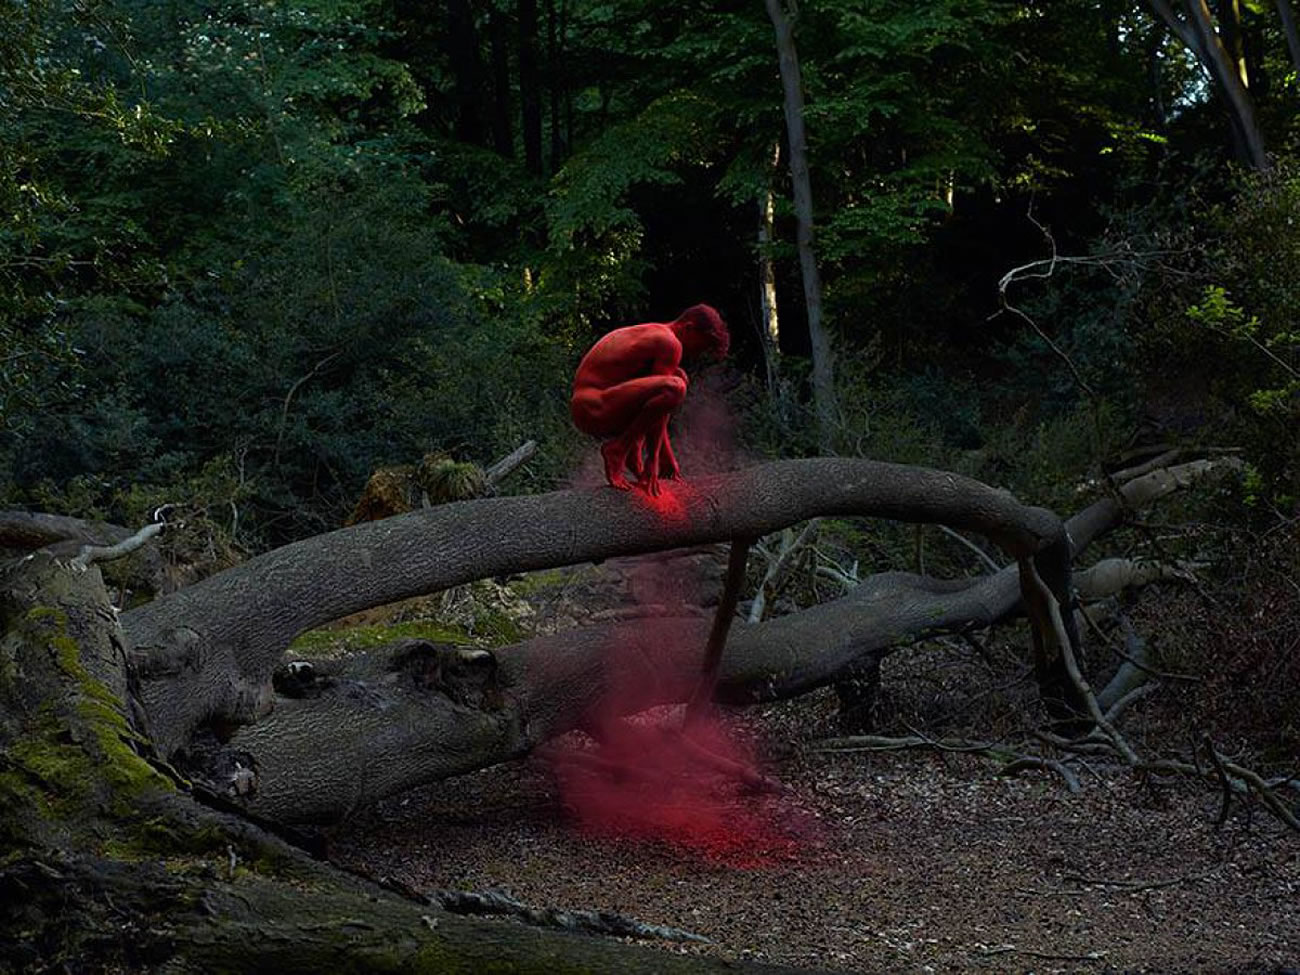 red dust on man, sitting on tree trunk by by bertil nilsson